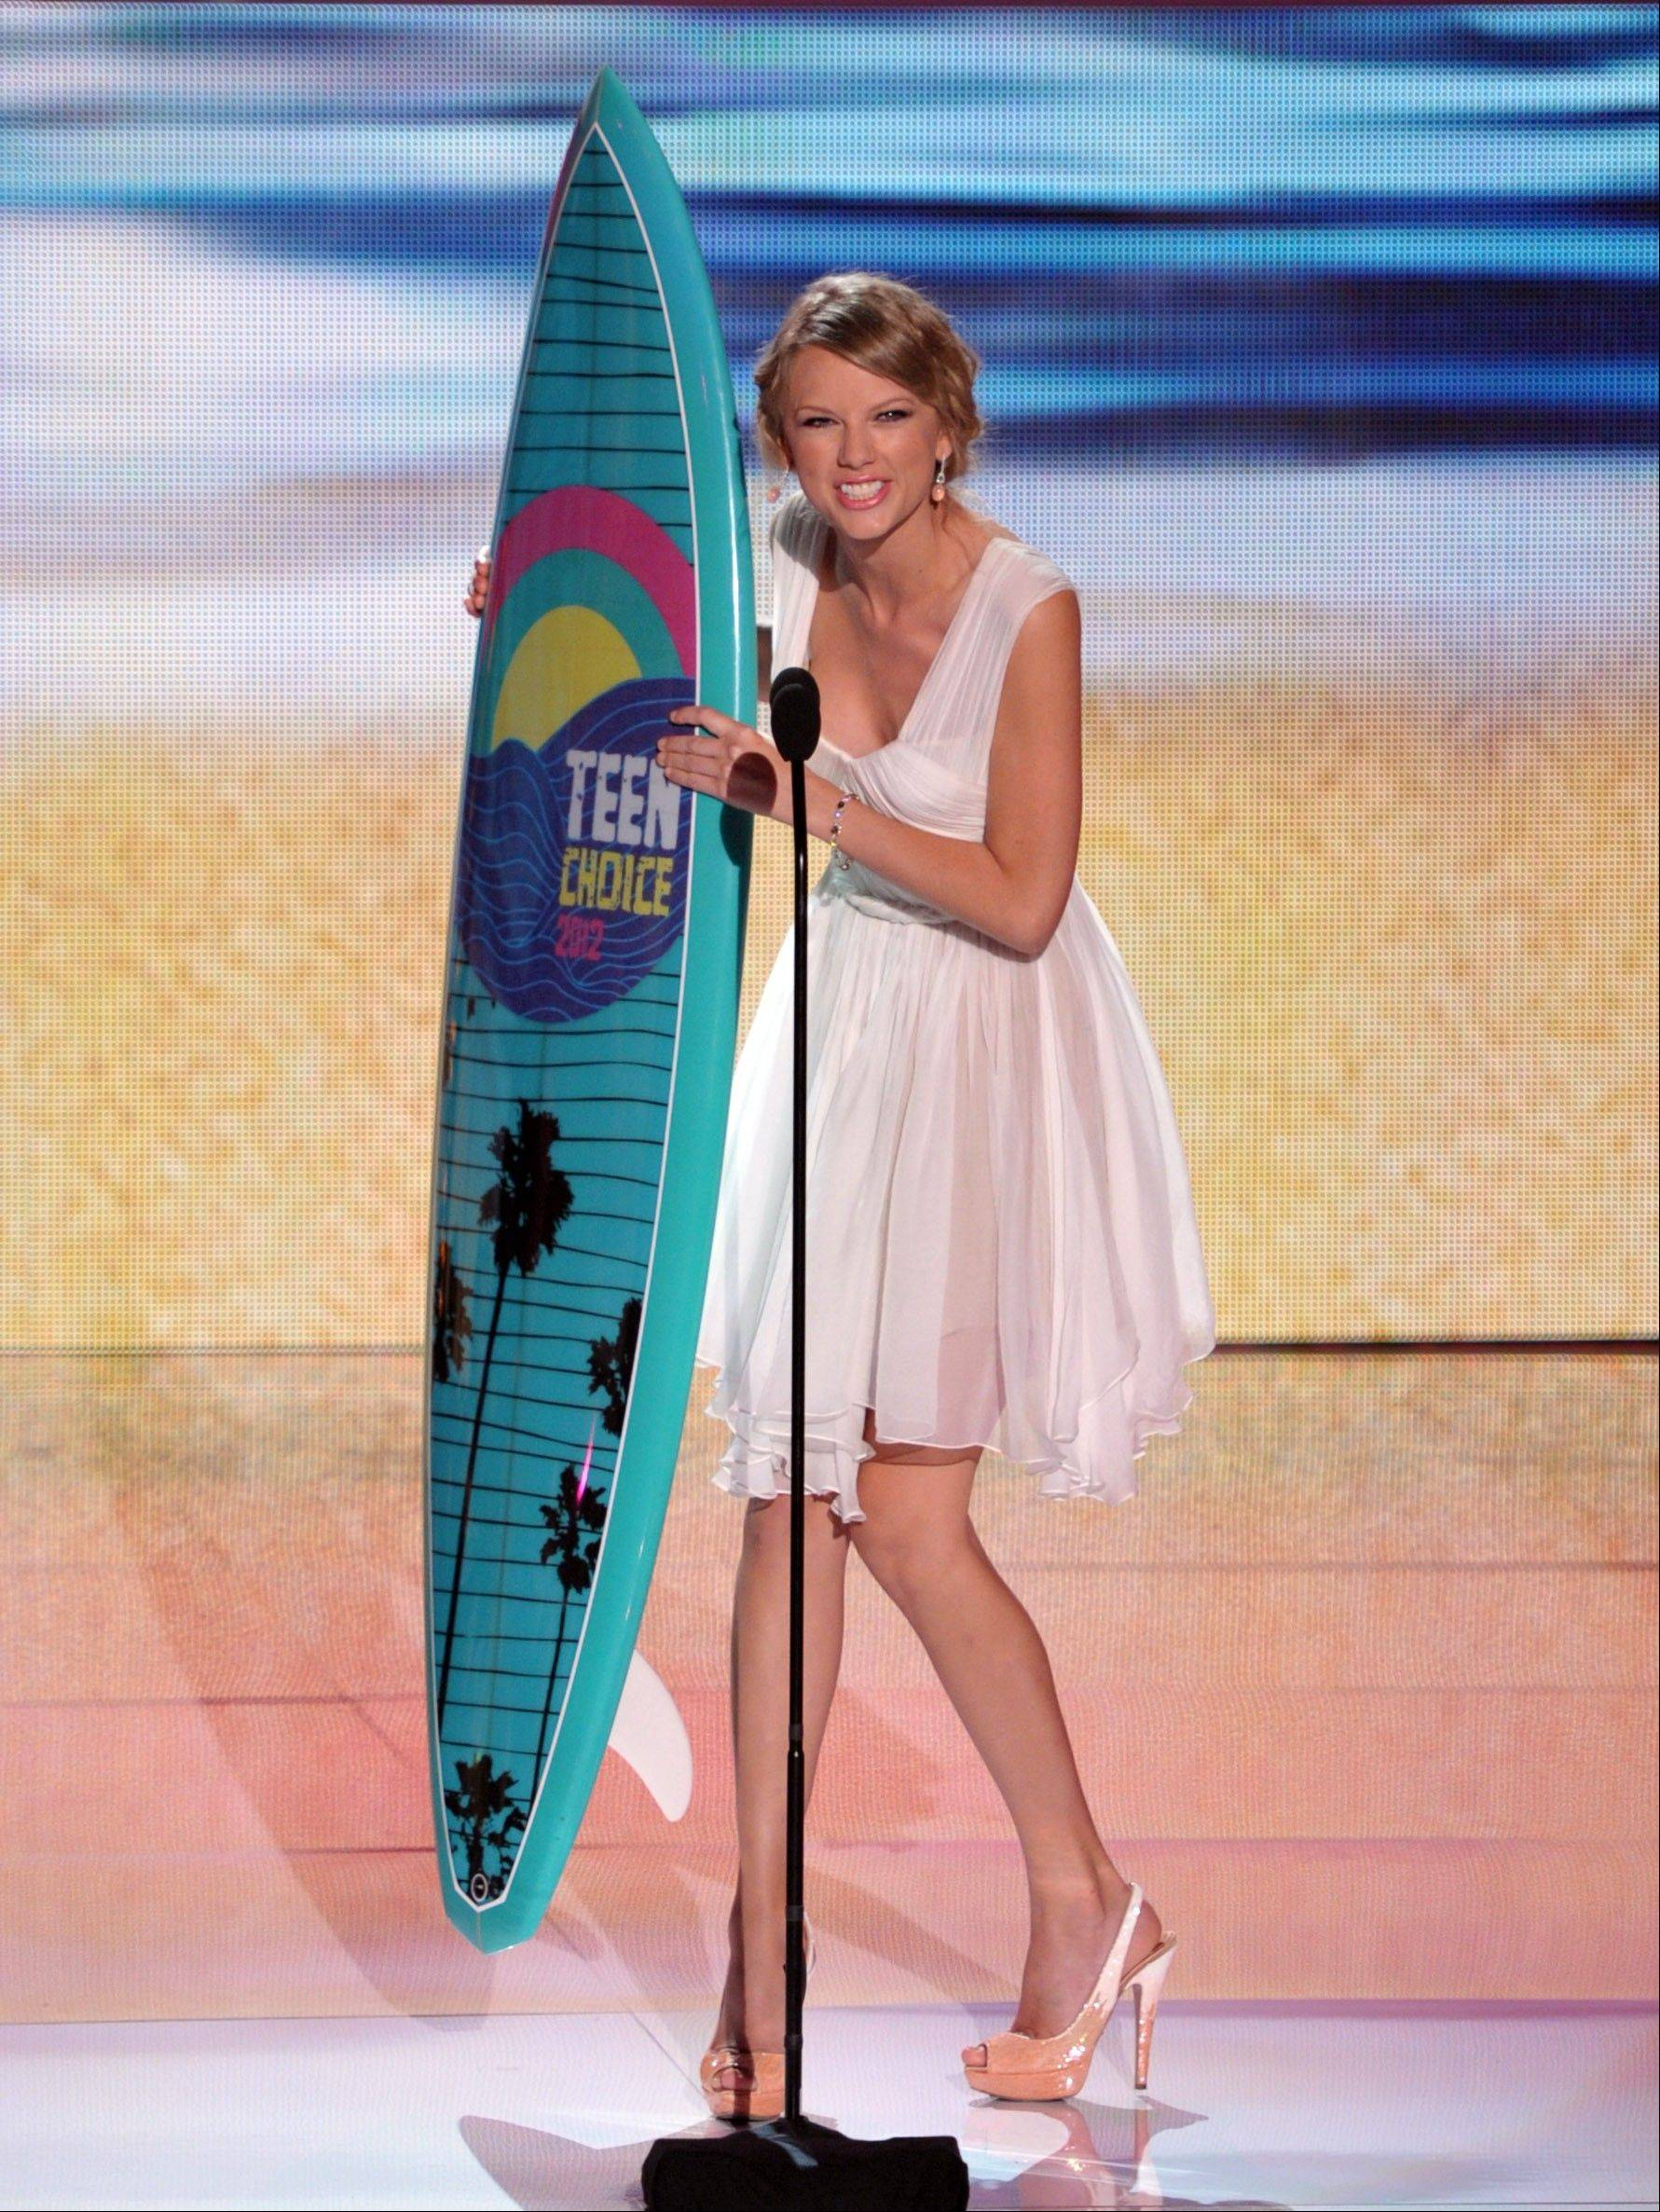 Taylor Swift accepts the award for best female artist at the Teen Choice Awards on Sunday in Universal City, Calif.